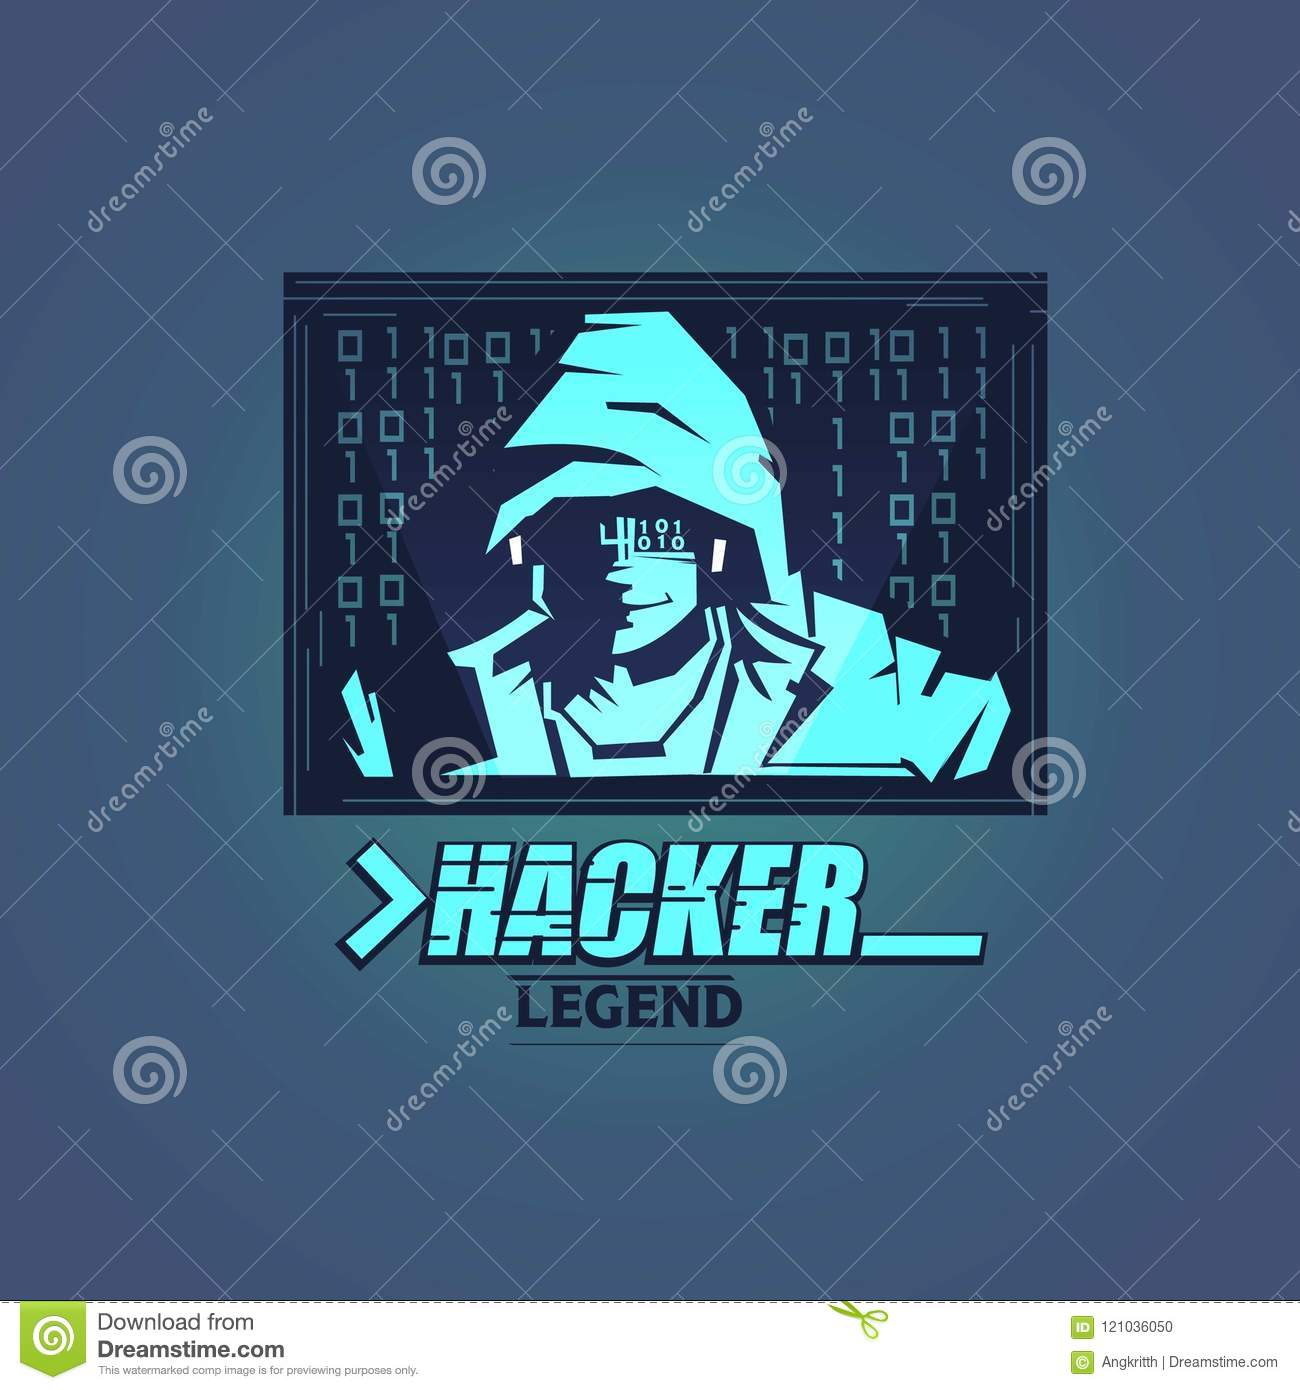 26ed1094 Hacker Logo Stock Illustrations – 4,718 Hacker Logo Stock Illustrations,  Vectors & Clipart - Dreamstime